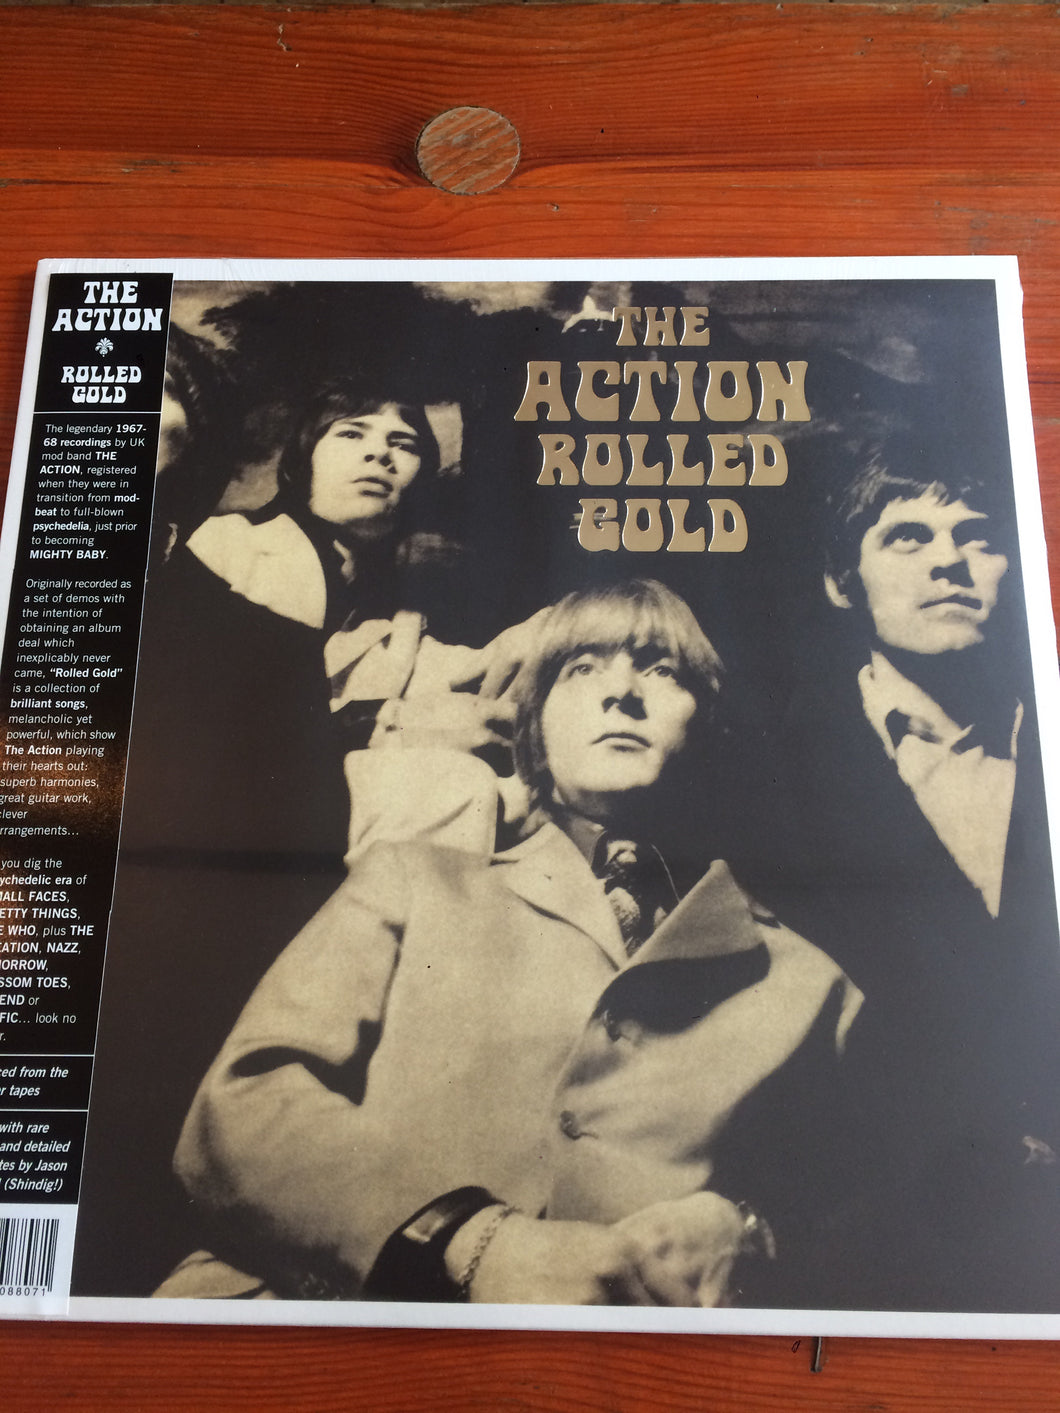 The Action - Rolled Gold